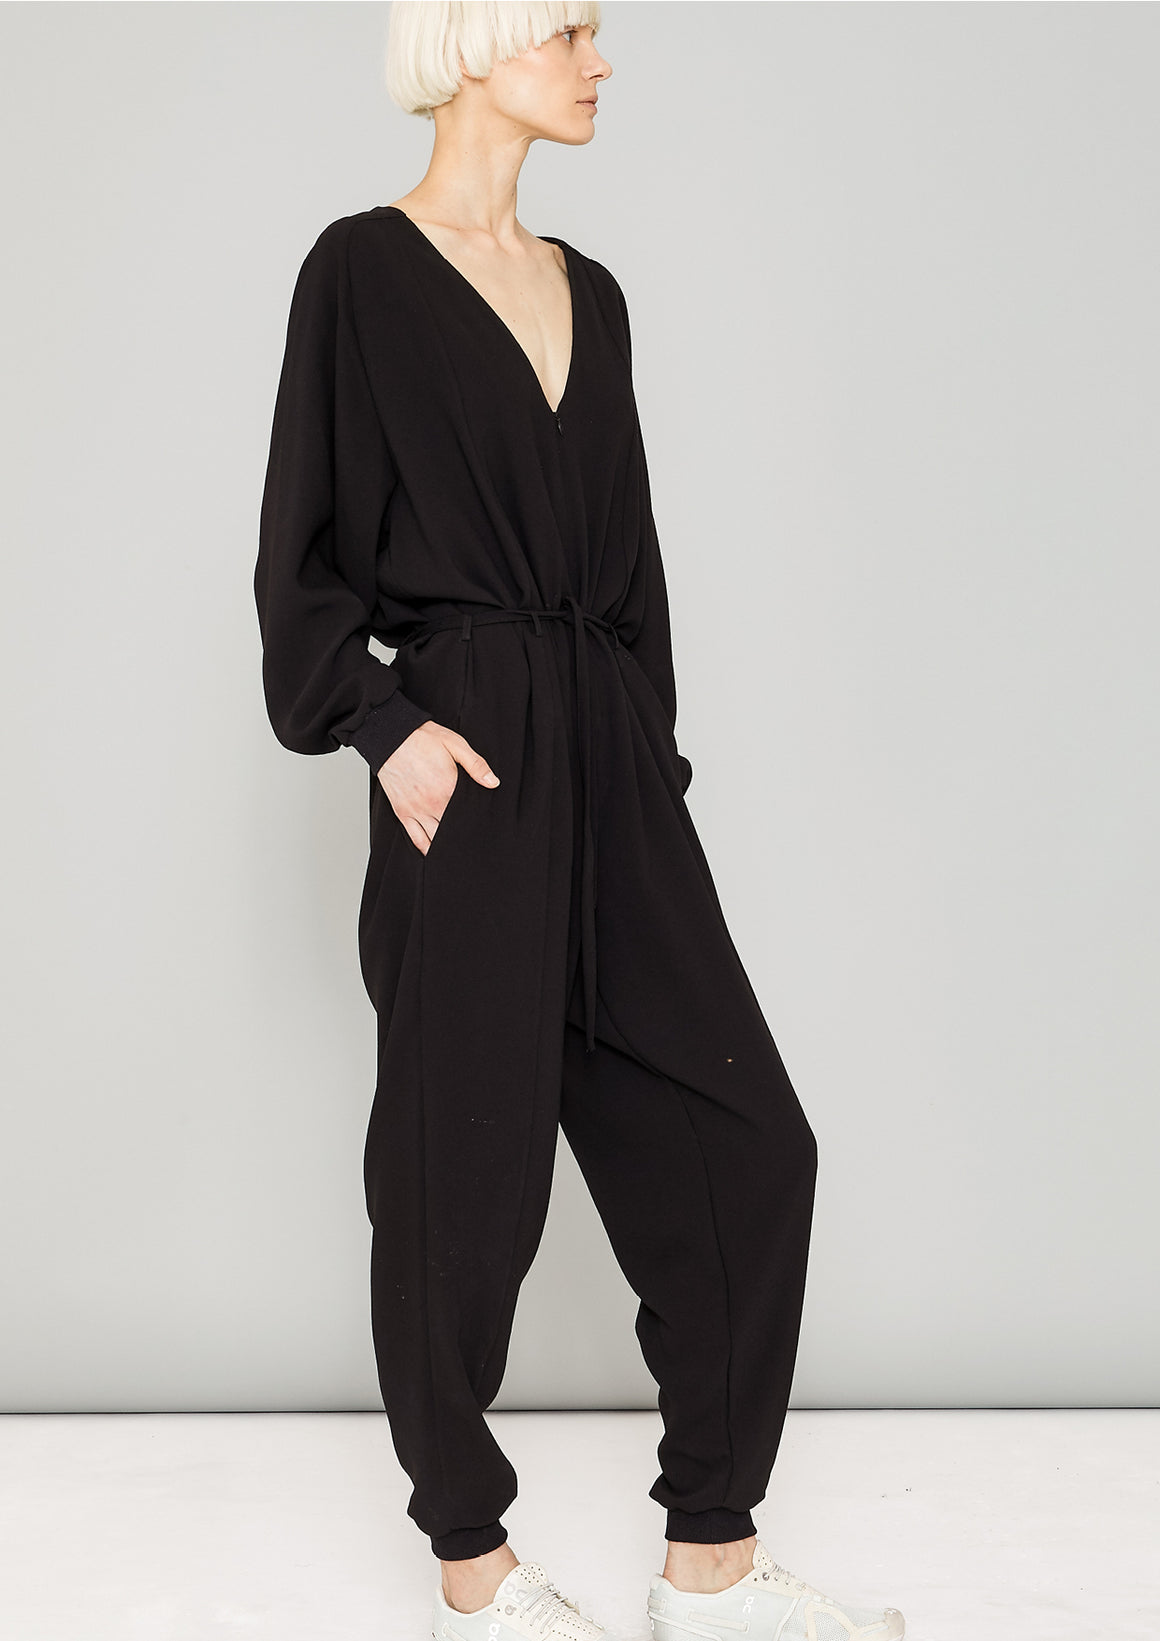 JUMPSUIT LONG OVERSIZED - HEAVY DRAPING black